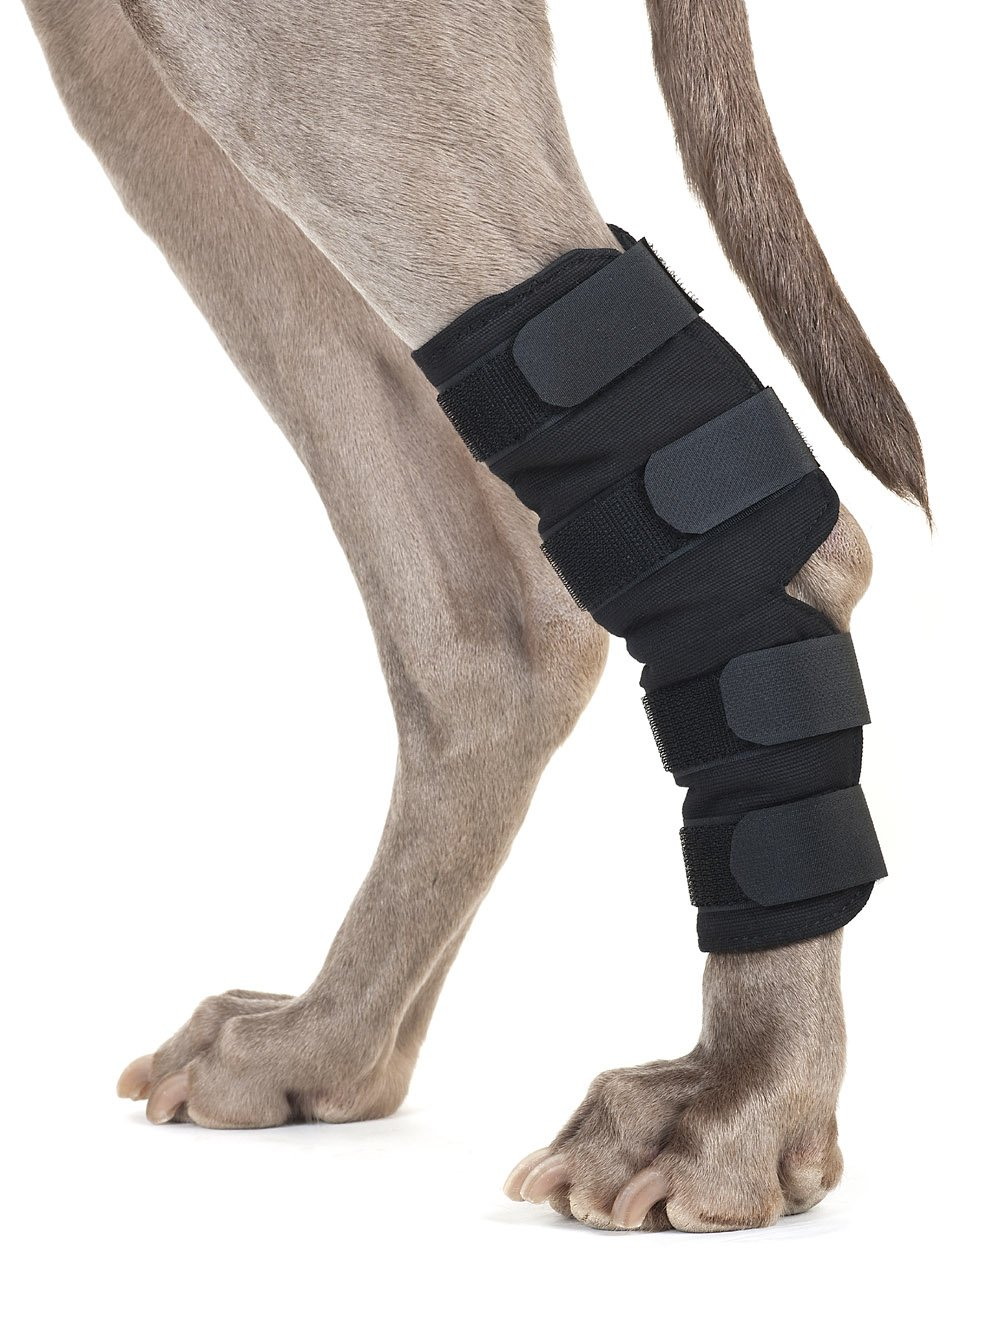 Back on Track Therapeutic Dog Rear Leg/Hock Brace (Pair) Large 8.75-Inch Length, 6.75 to 7.8-Inches Top Width, 5.1 to 6.25-Inches Bottom Width with 4 Adjustable Straps by Back on Track